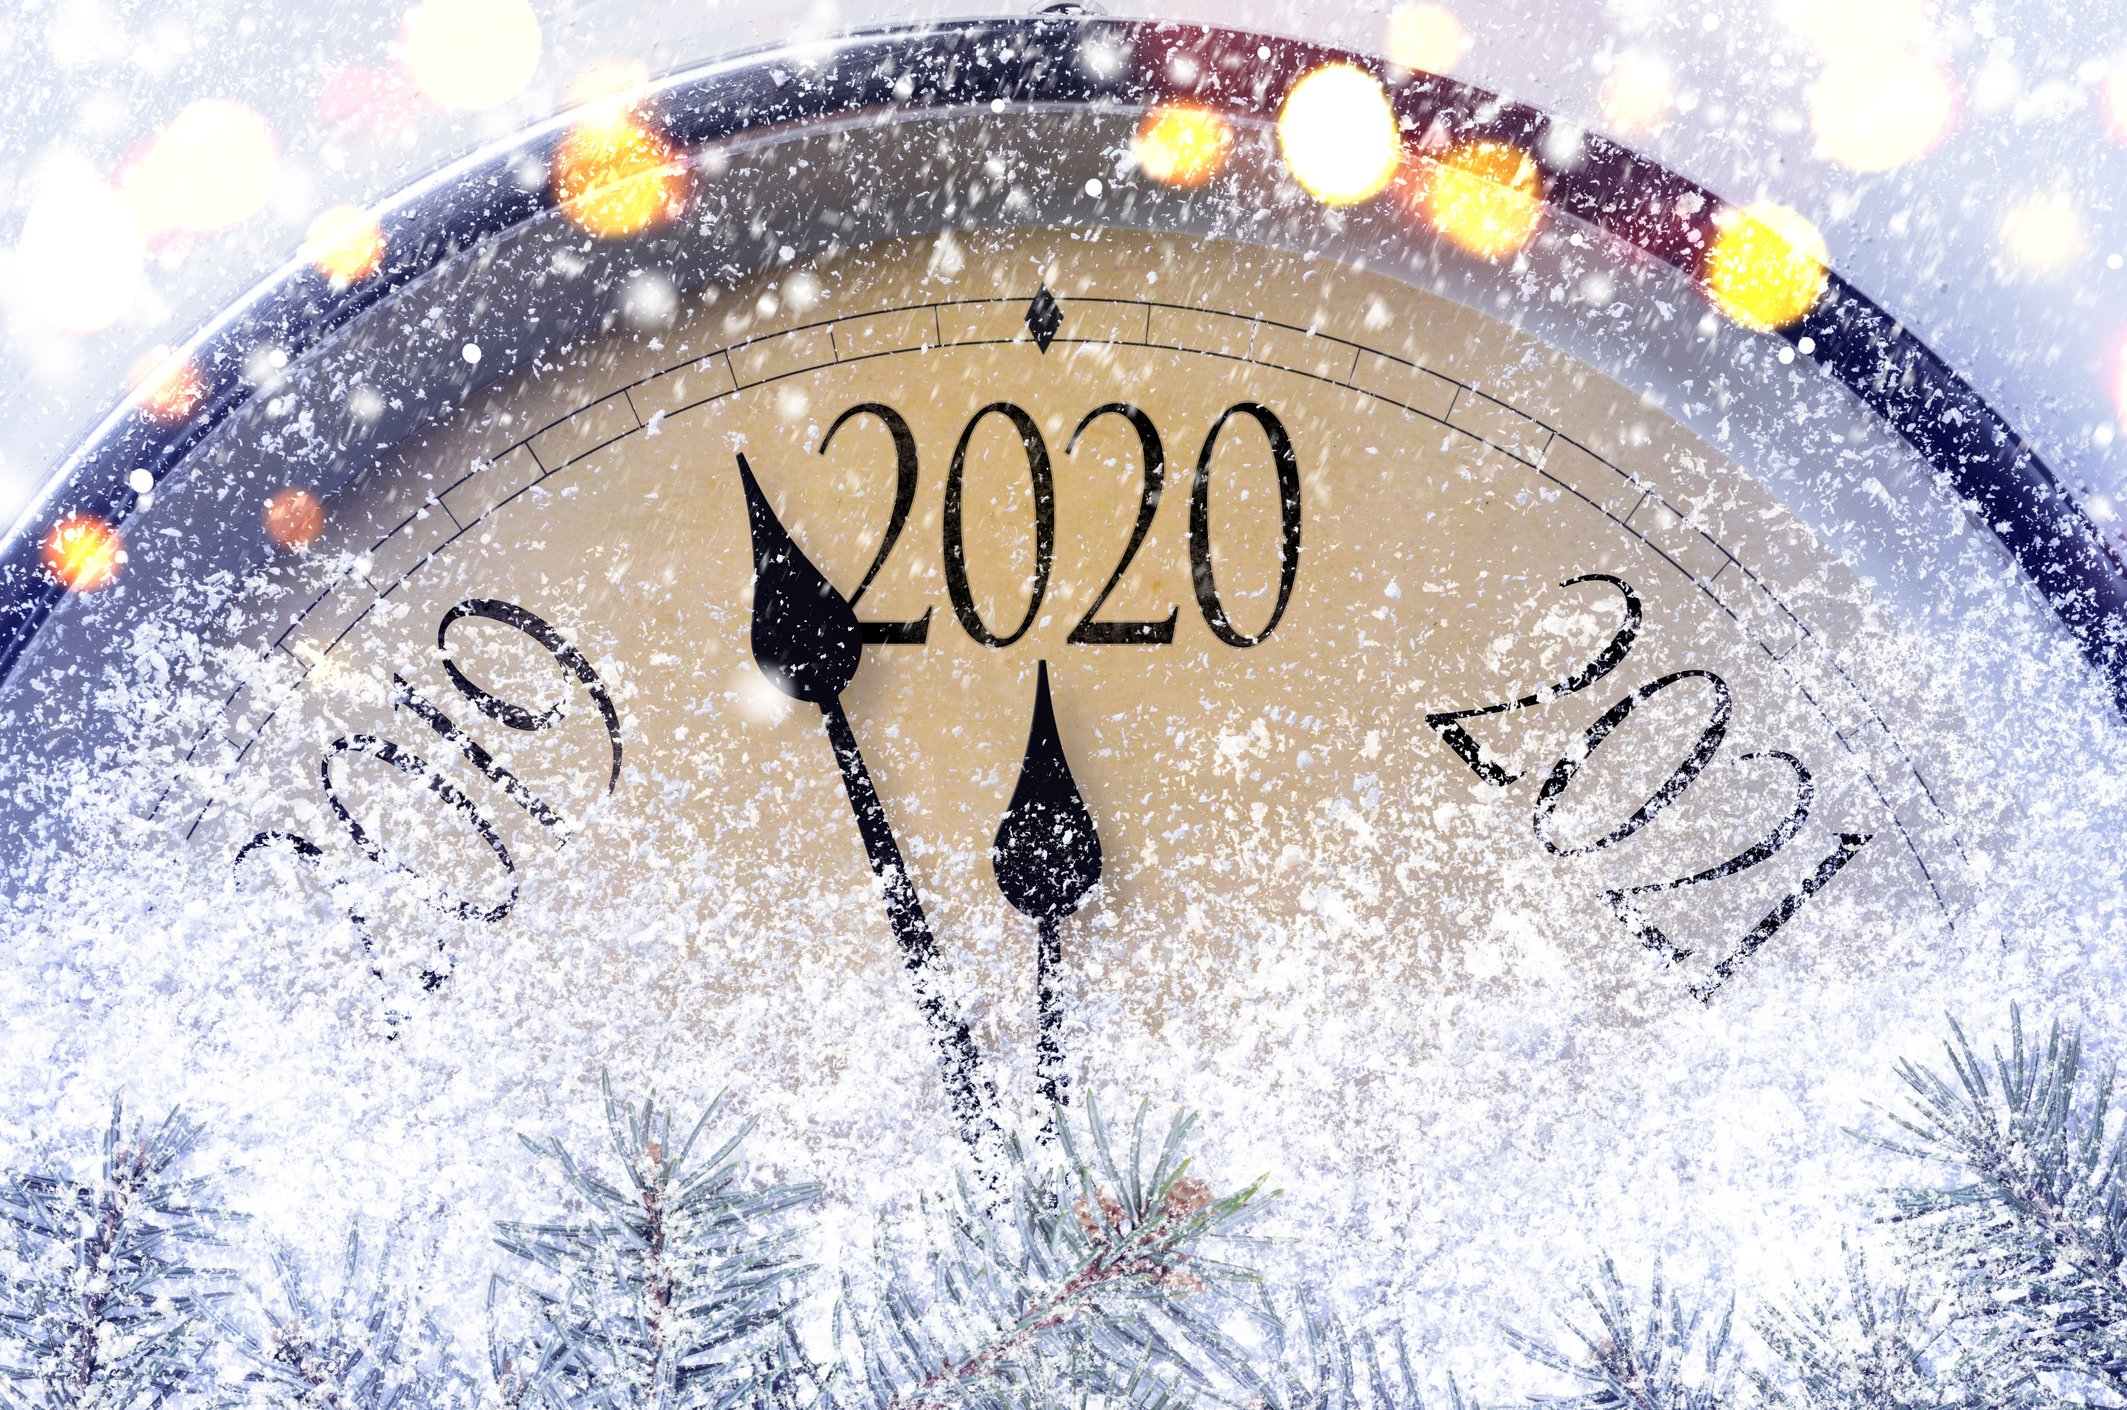 A clock covered in snow and twinkle lights switching from 2019 to 2020.